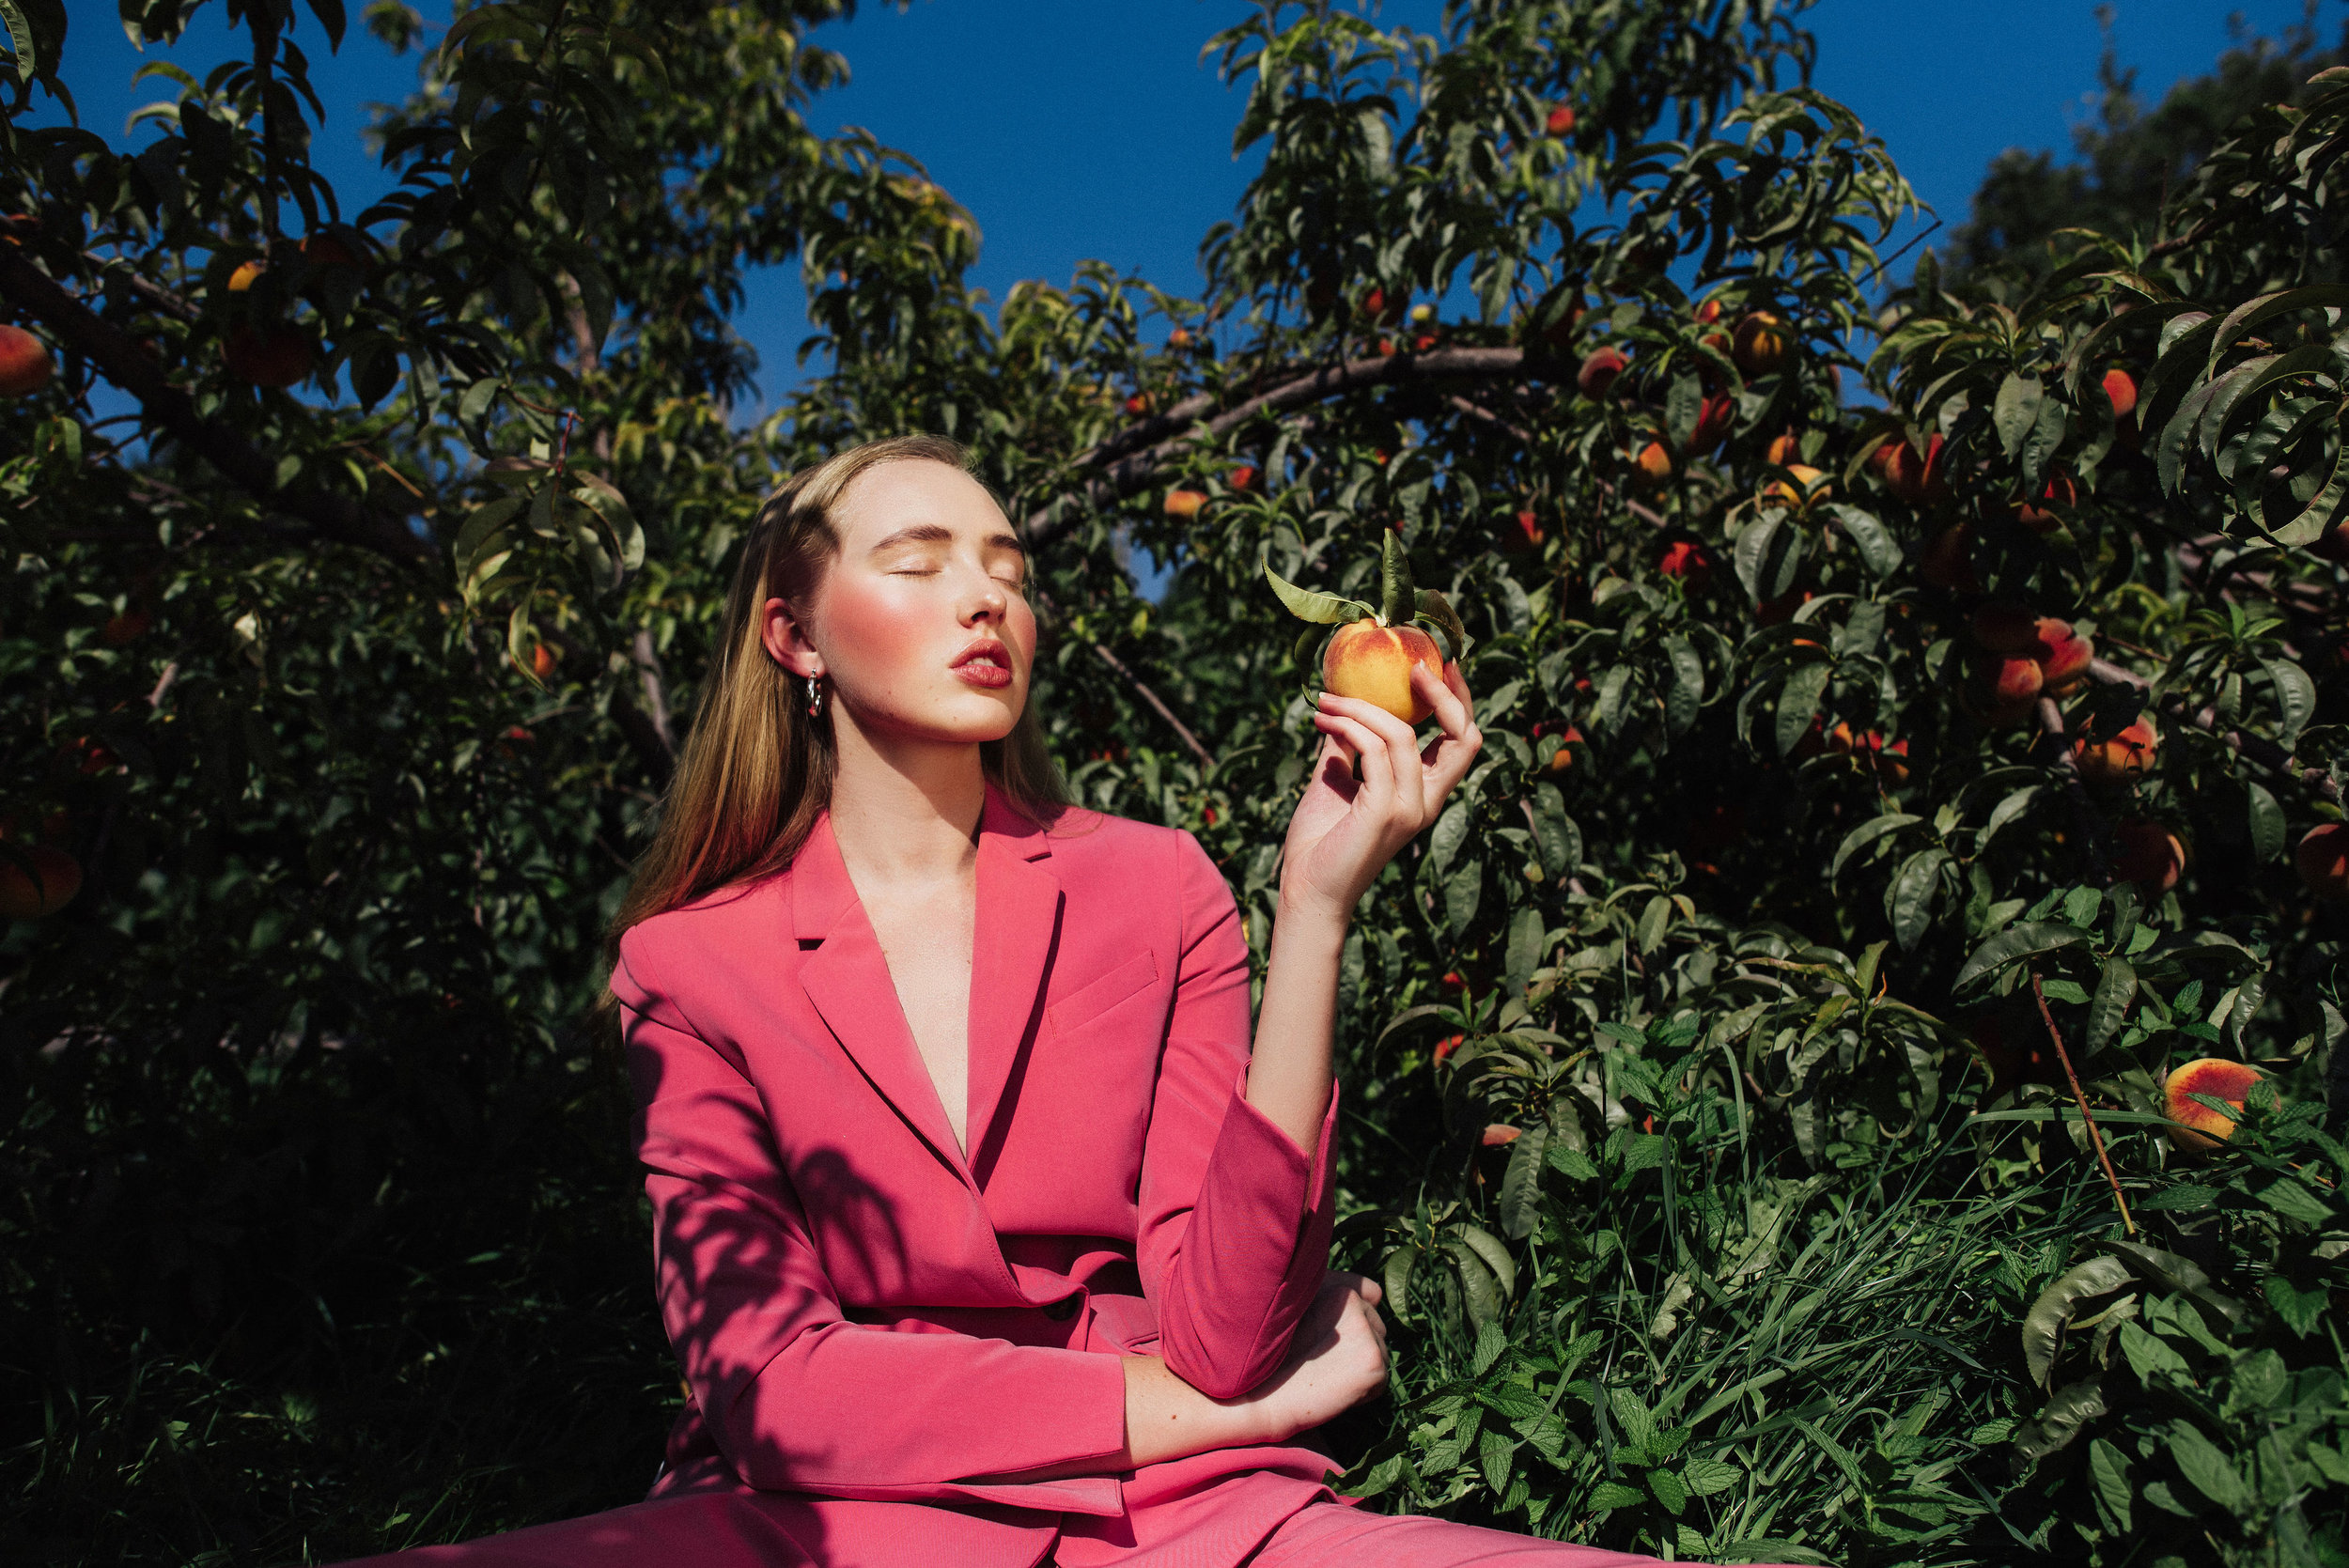 Peaches and Pink  Photographer: Eden Strader  Model: Hailey Beths  Makeup & Wardrobe: Abigail Hill